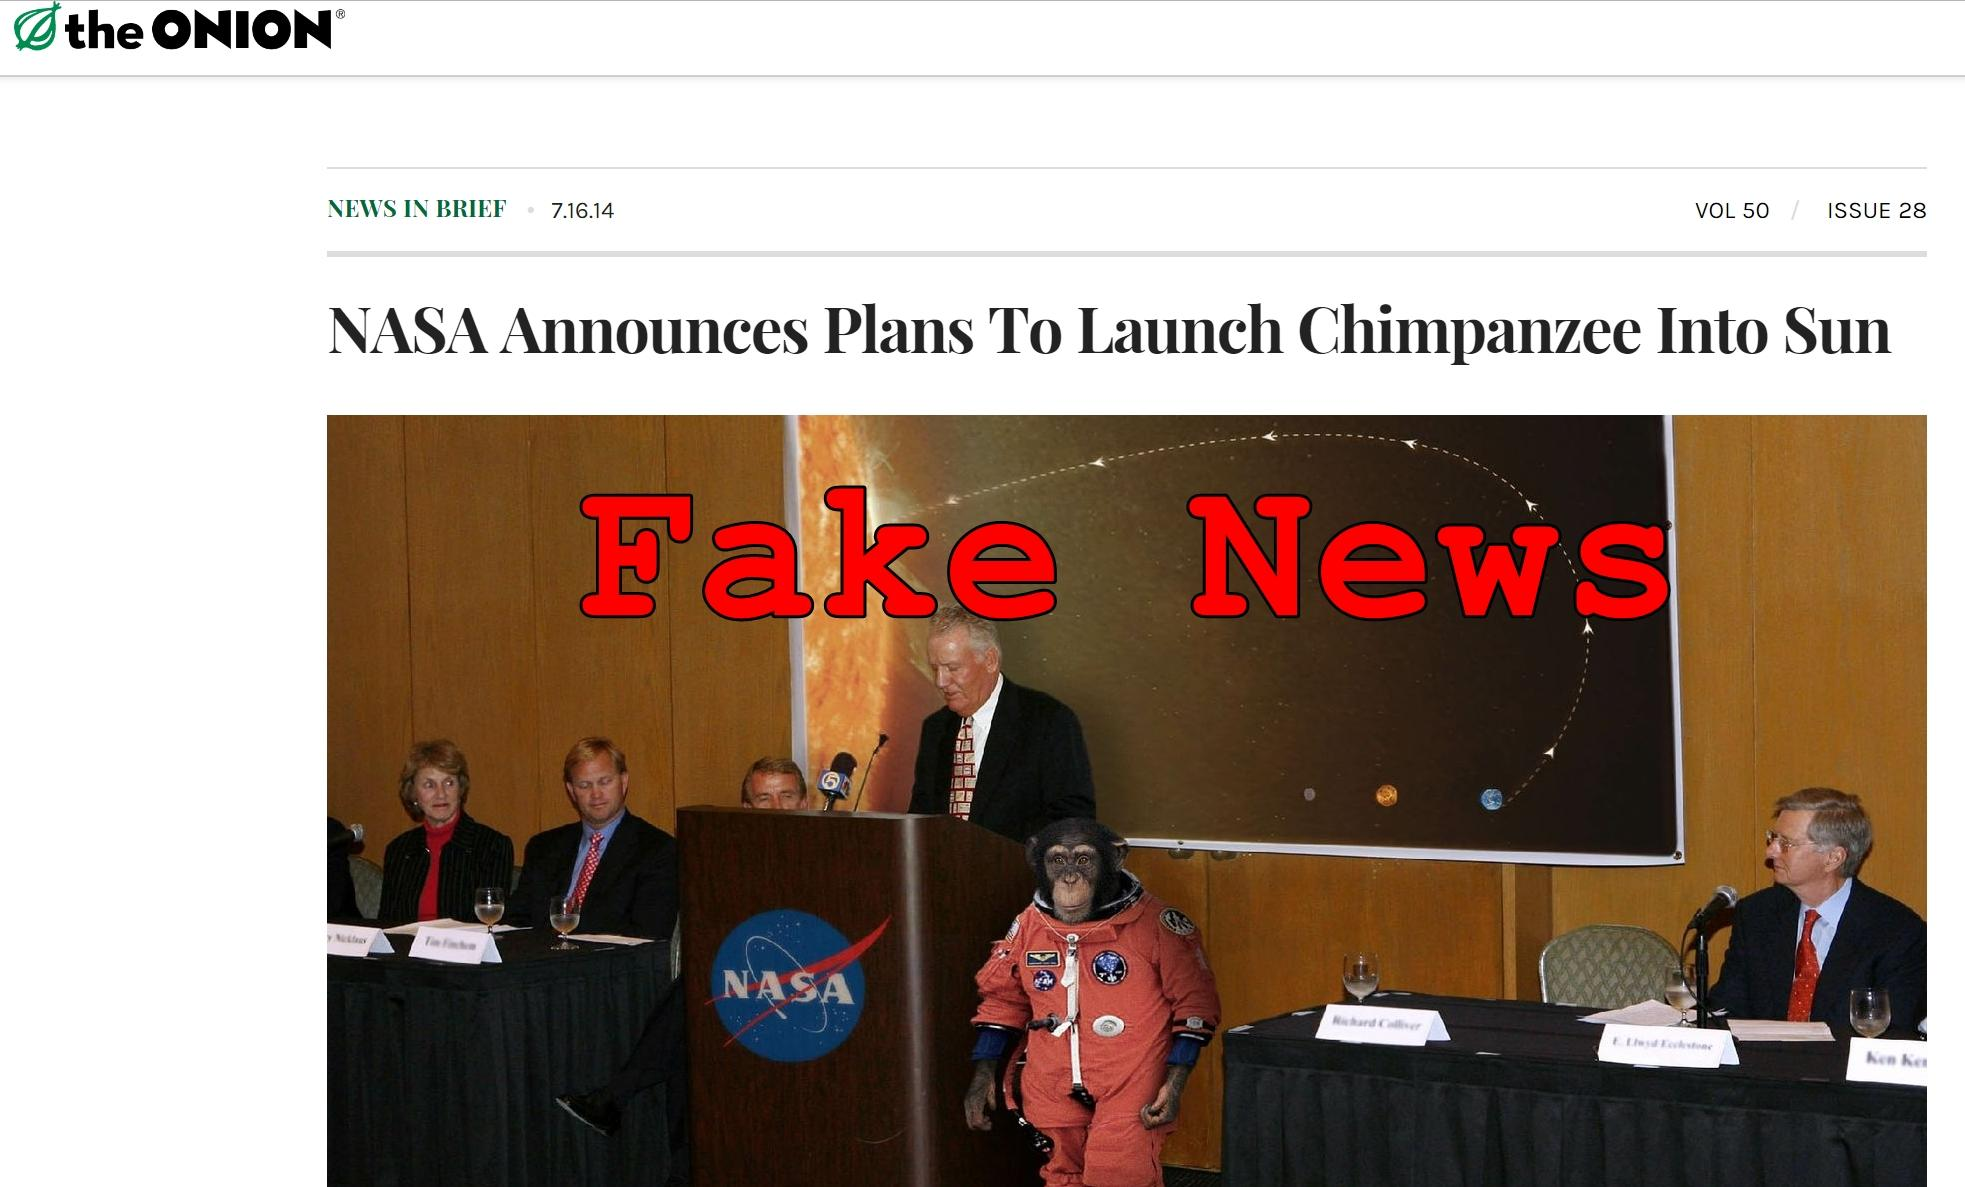 Fake News: NASA Did NOT Announce Plans To Launch Chimpanzee Into Sun